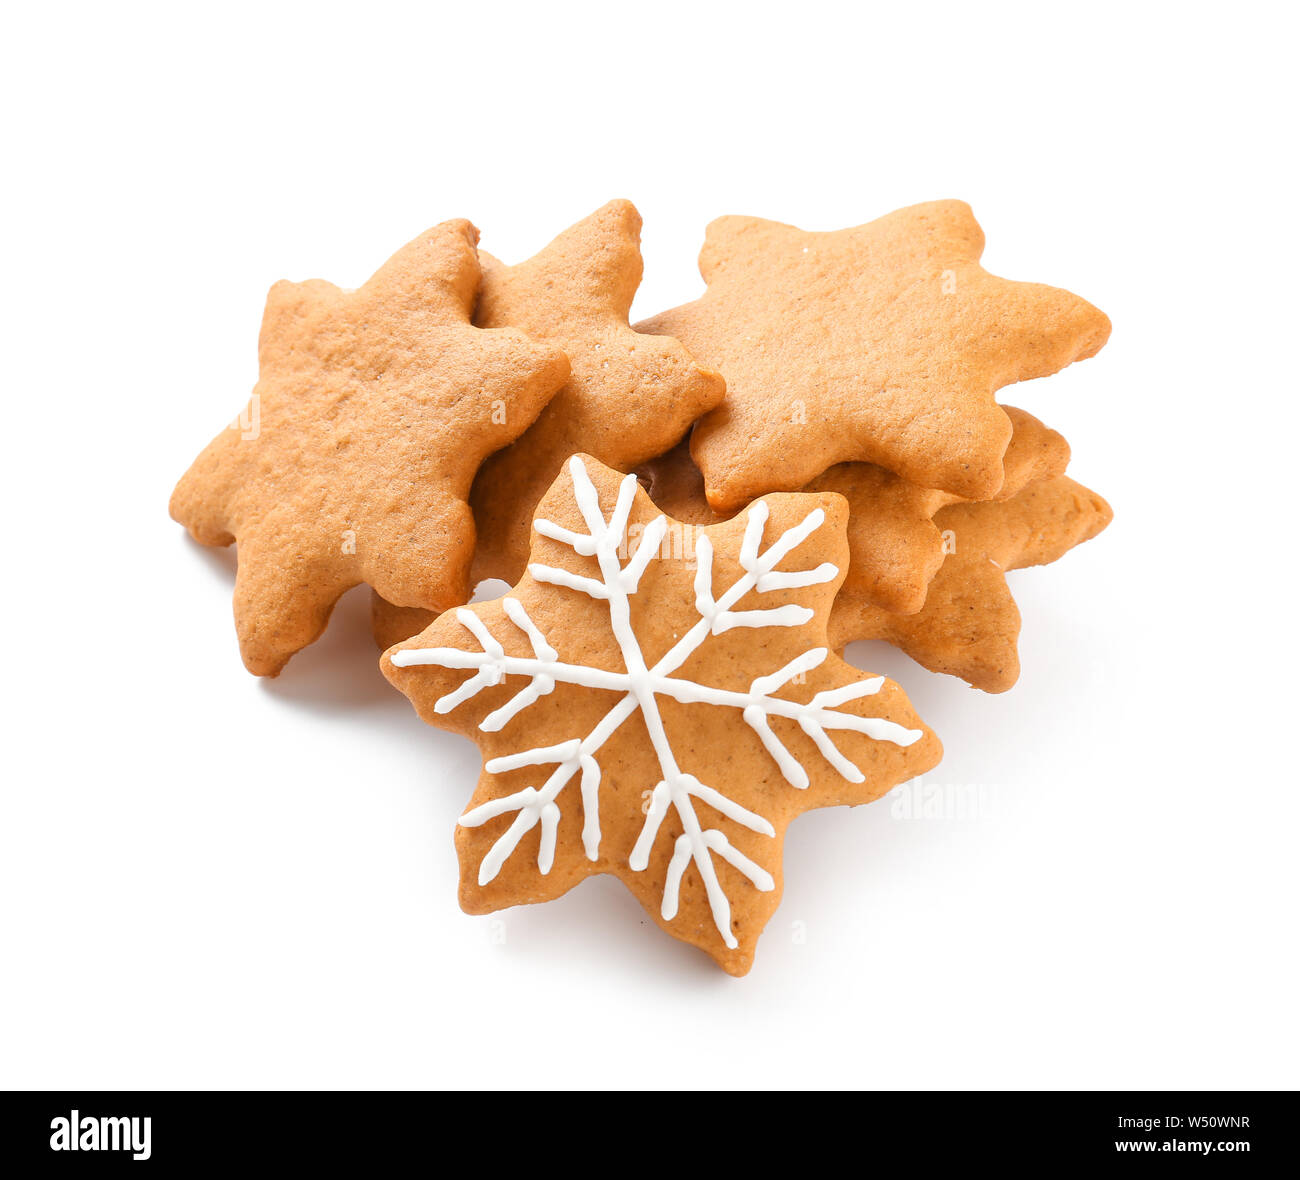 Tasty Christmas Cookies On White Background Stock Photo 261249011